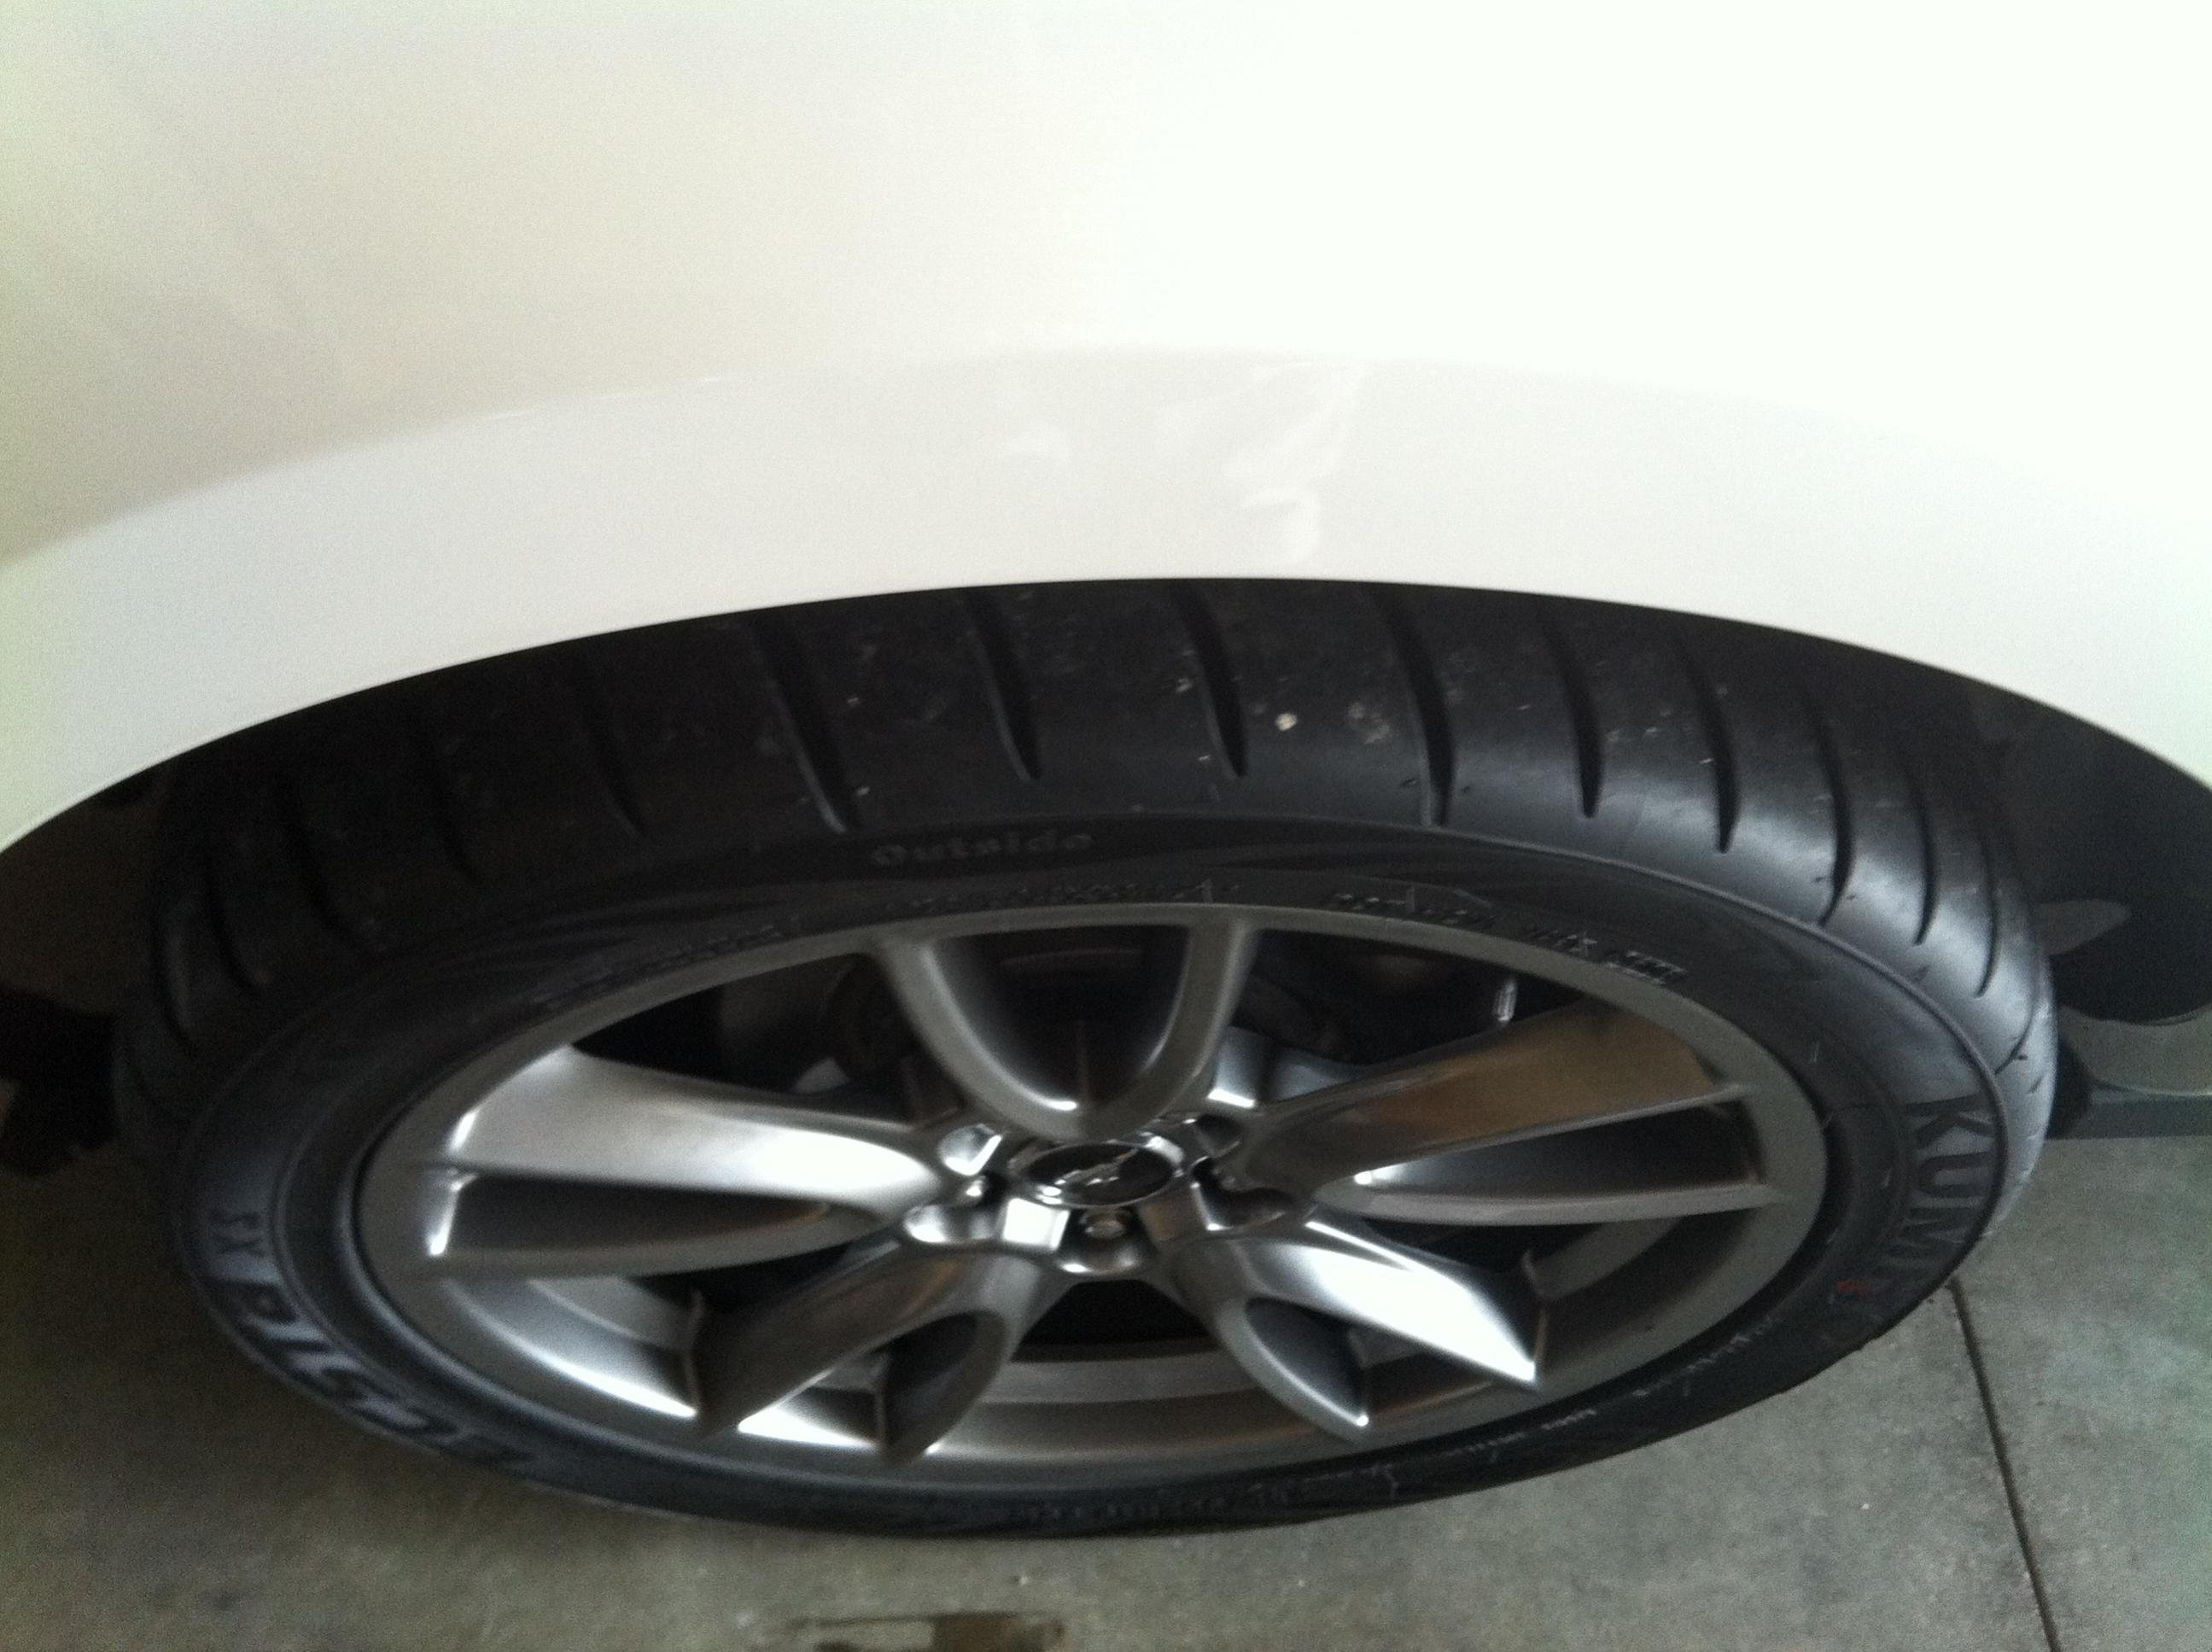 "2011 Mustang Wheel Size >> Brembo Brake Package 19"" x 9"" Rim with 285/35/19 Tire - Ford Mustang Forum"